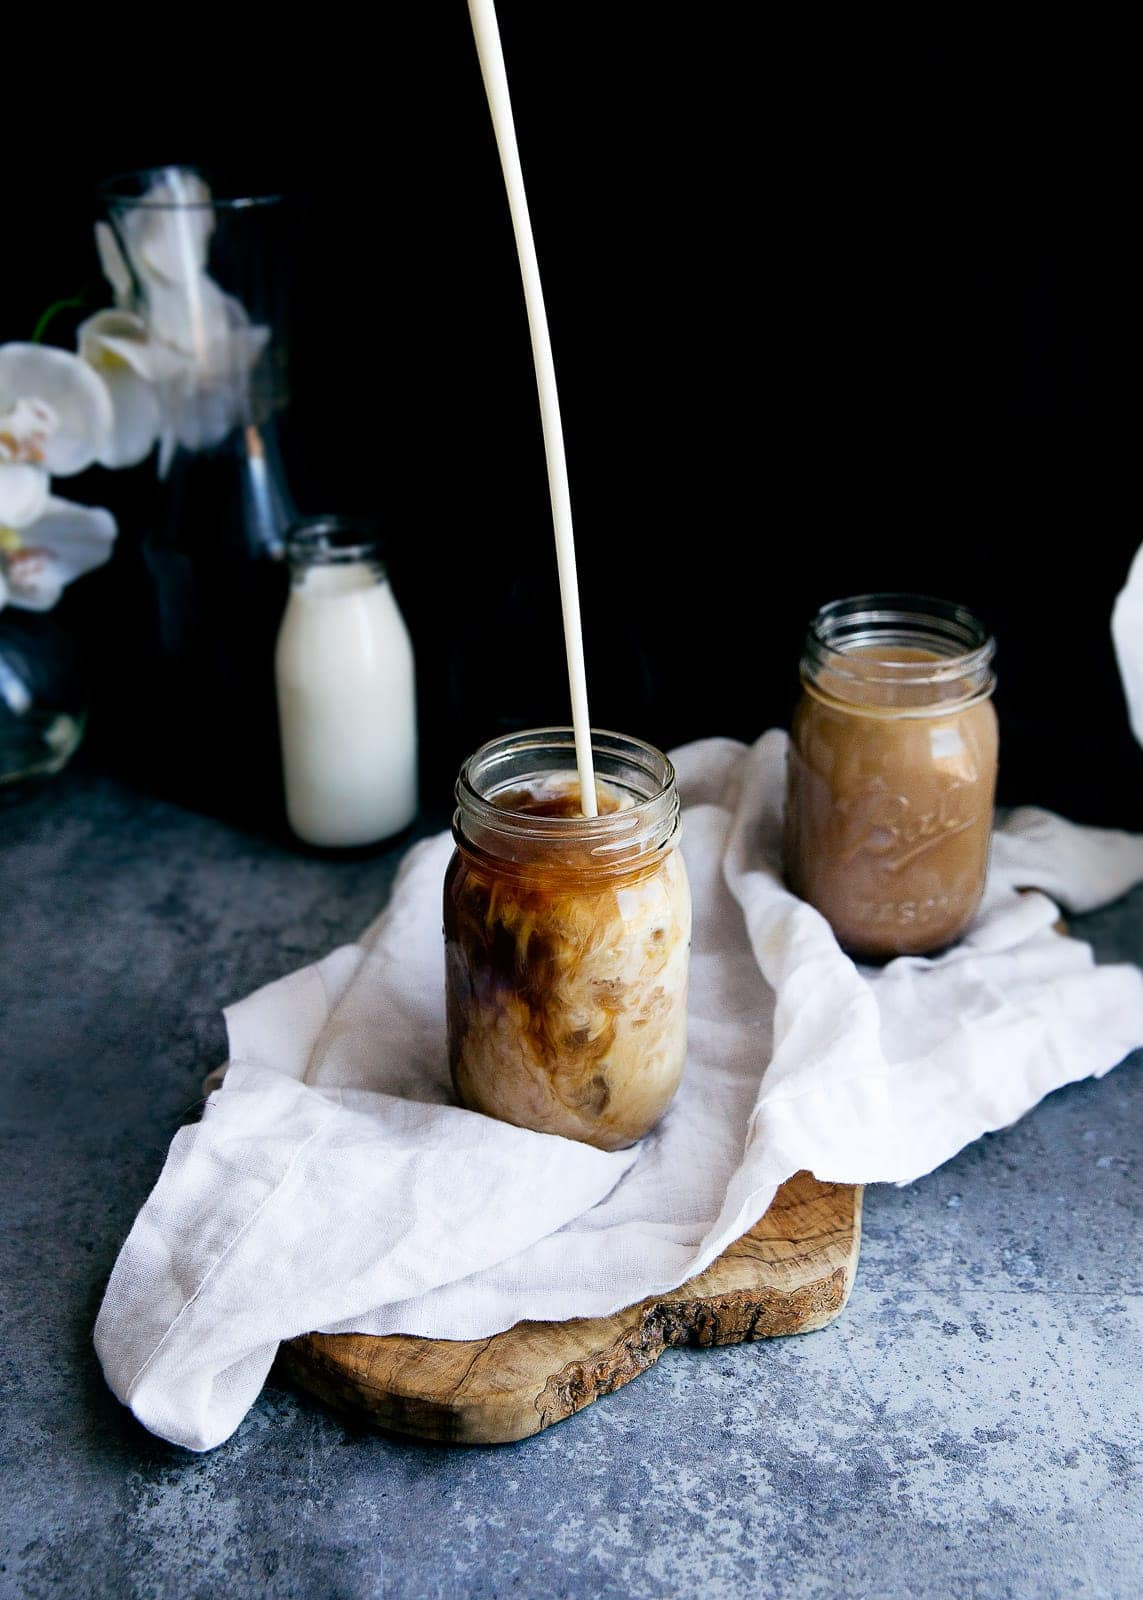 Mar 19,  · This Iced Coffee Recipe is my go-to Coffee Recipe and also my favorite thing to make in bulk for new moms!! Tips for Making Homemade Iced Coffee: I'm not going to try to make you do anything complicated with this Iced Coffee Recipe. I want 5/5(4).